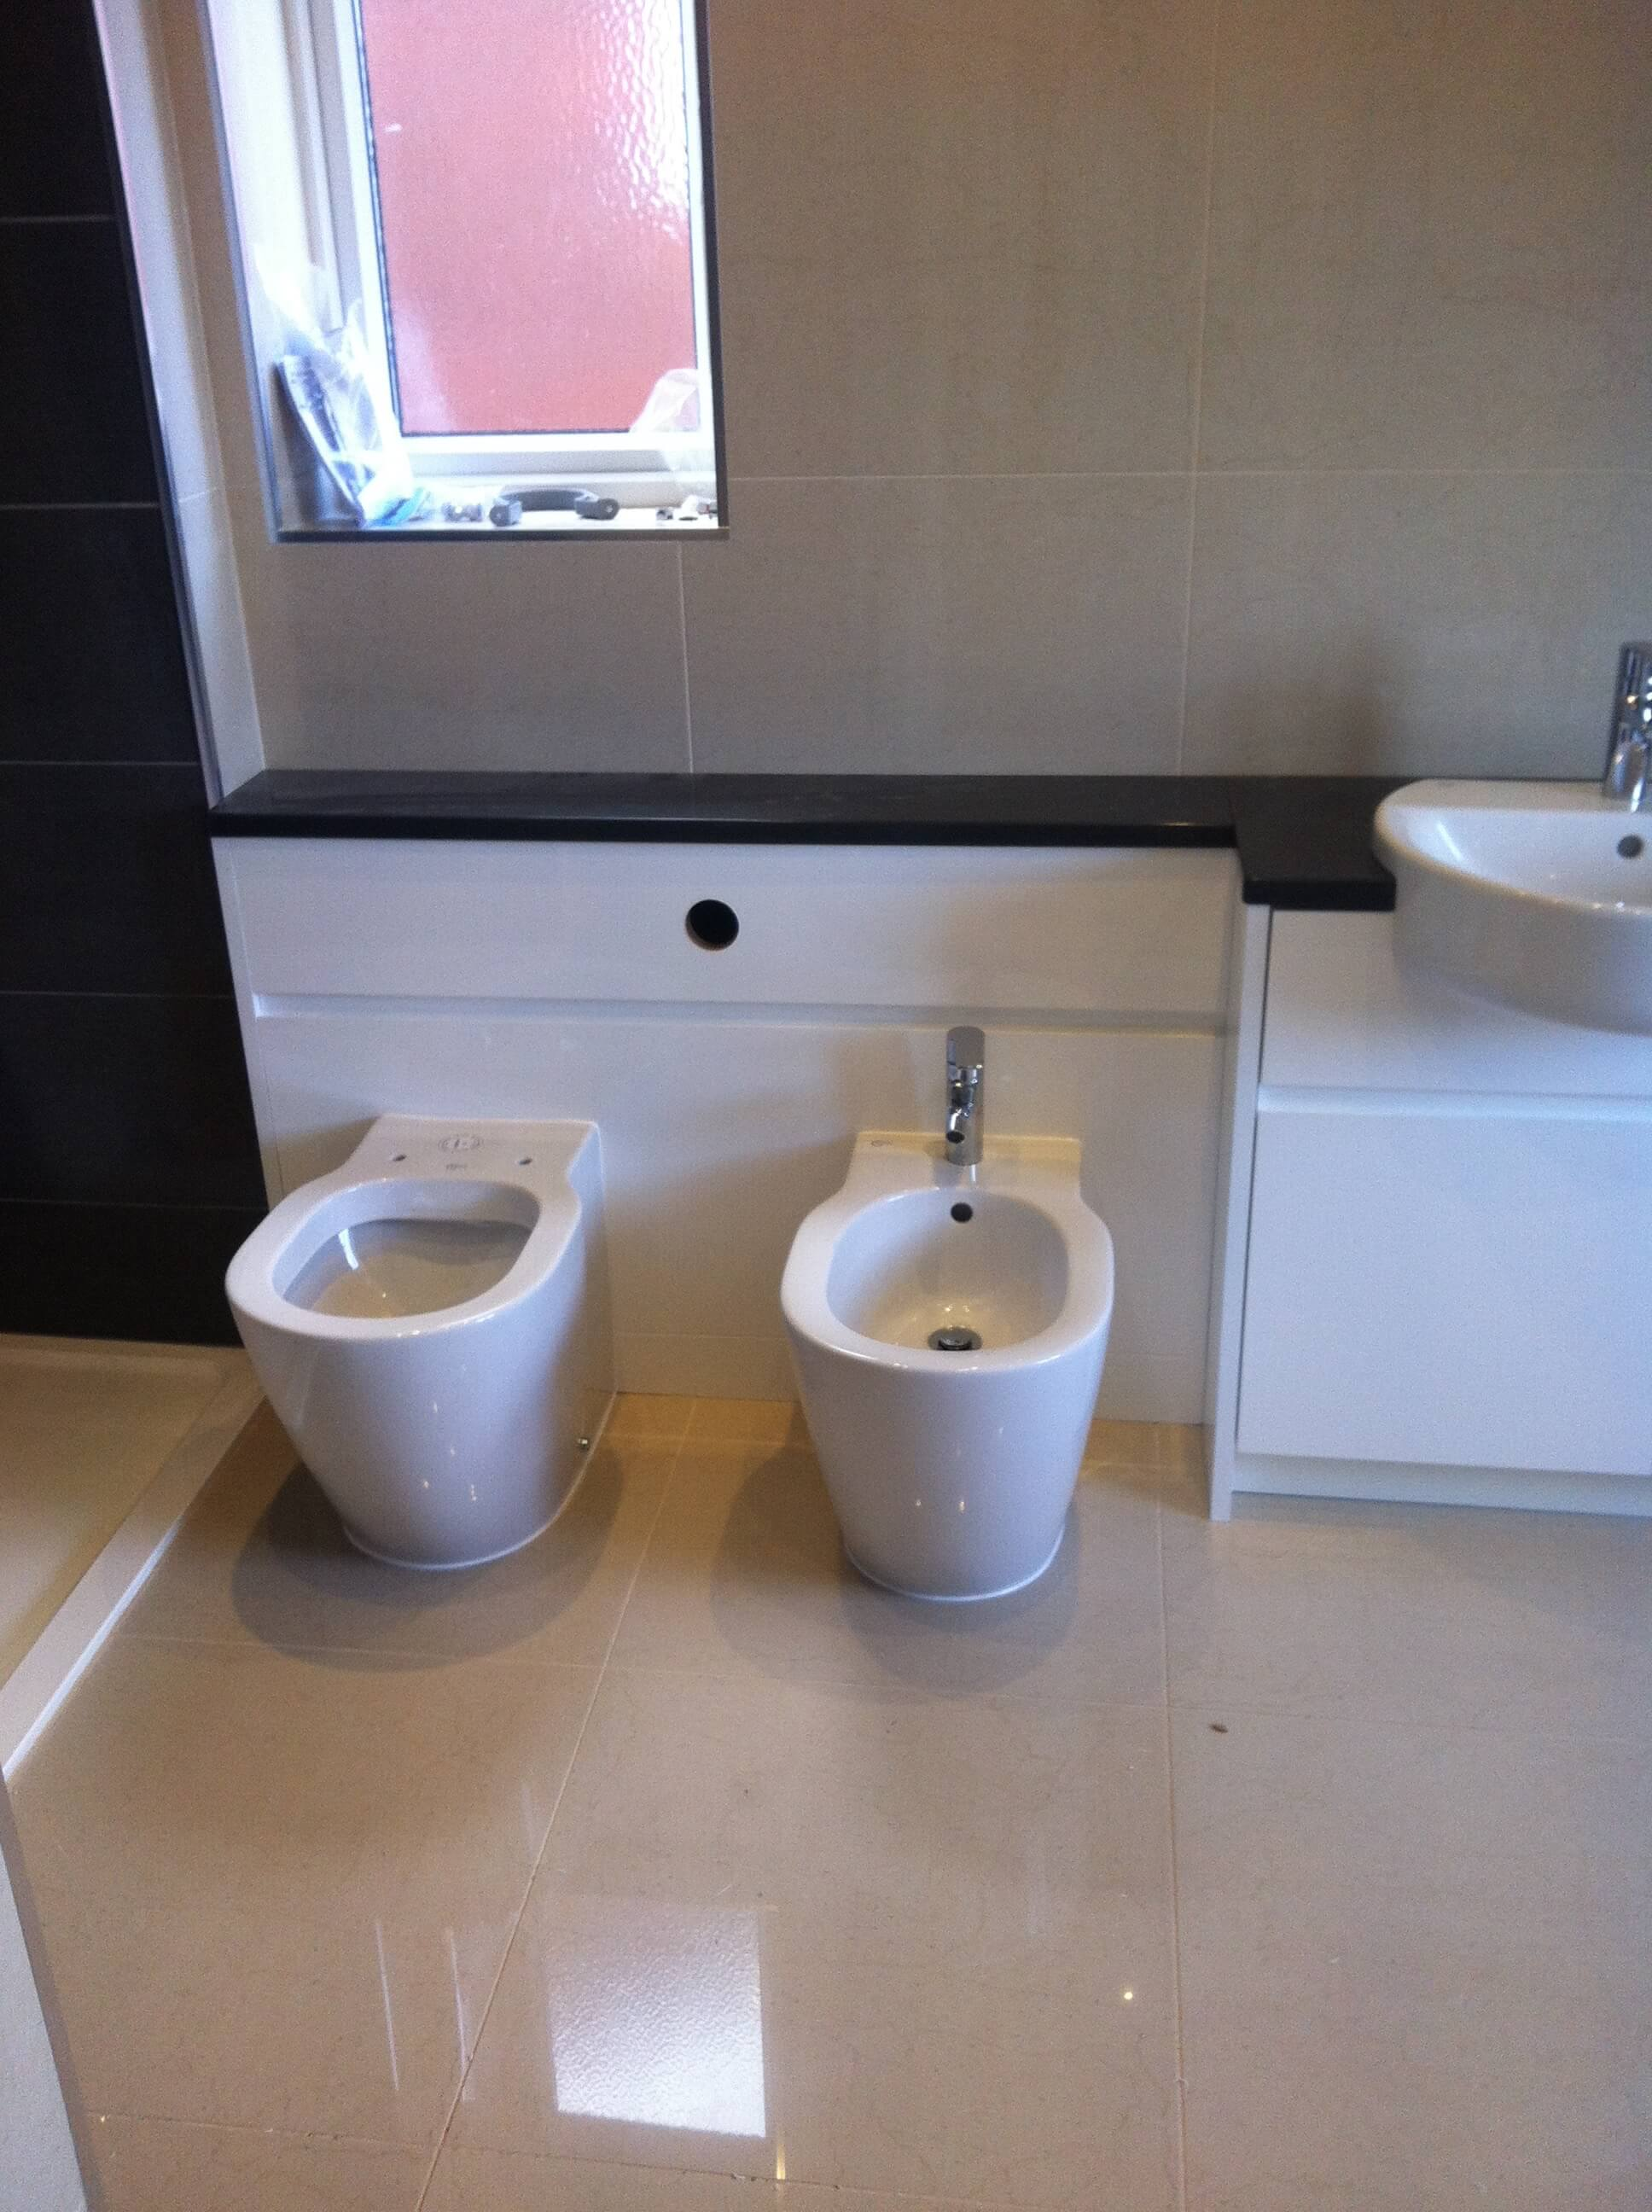 The toilet and Bidet have been installed